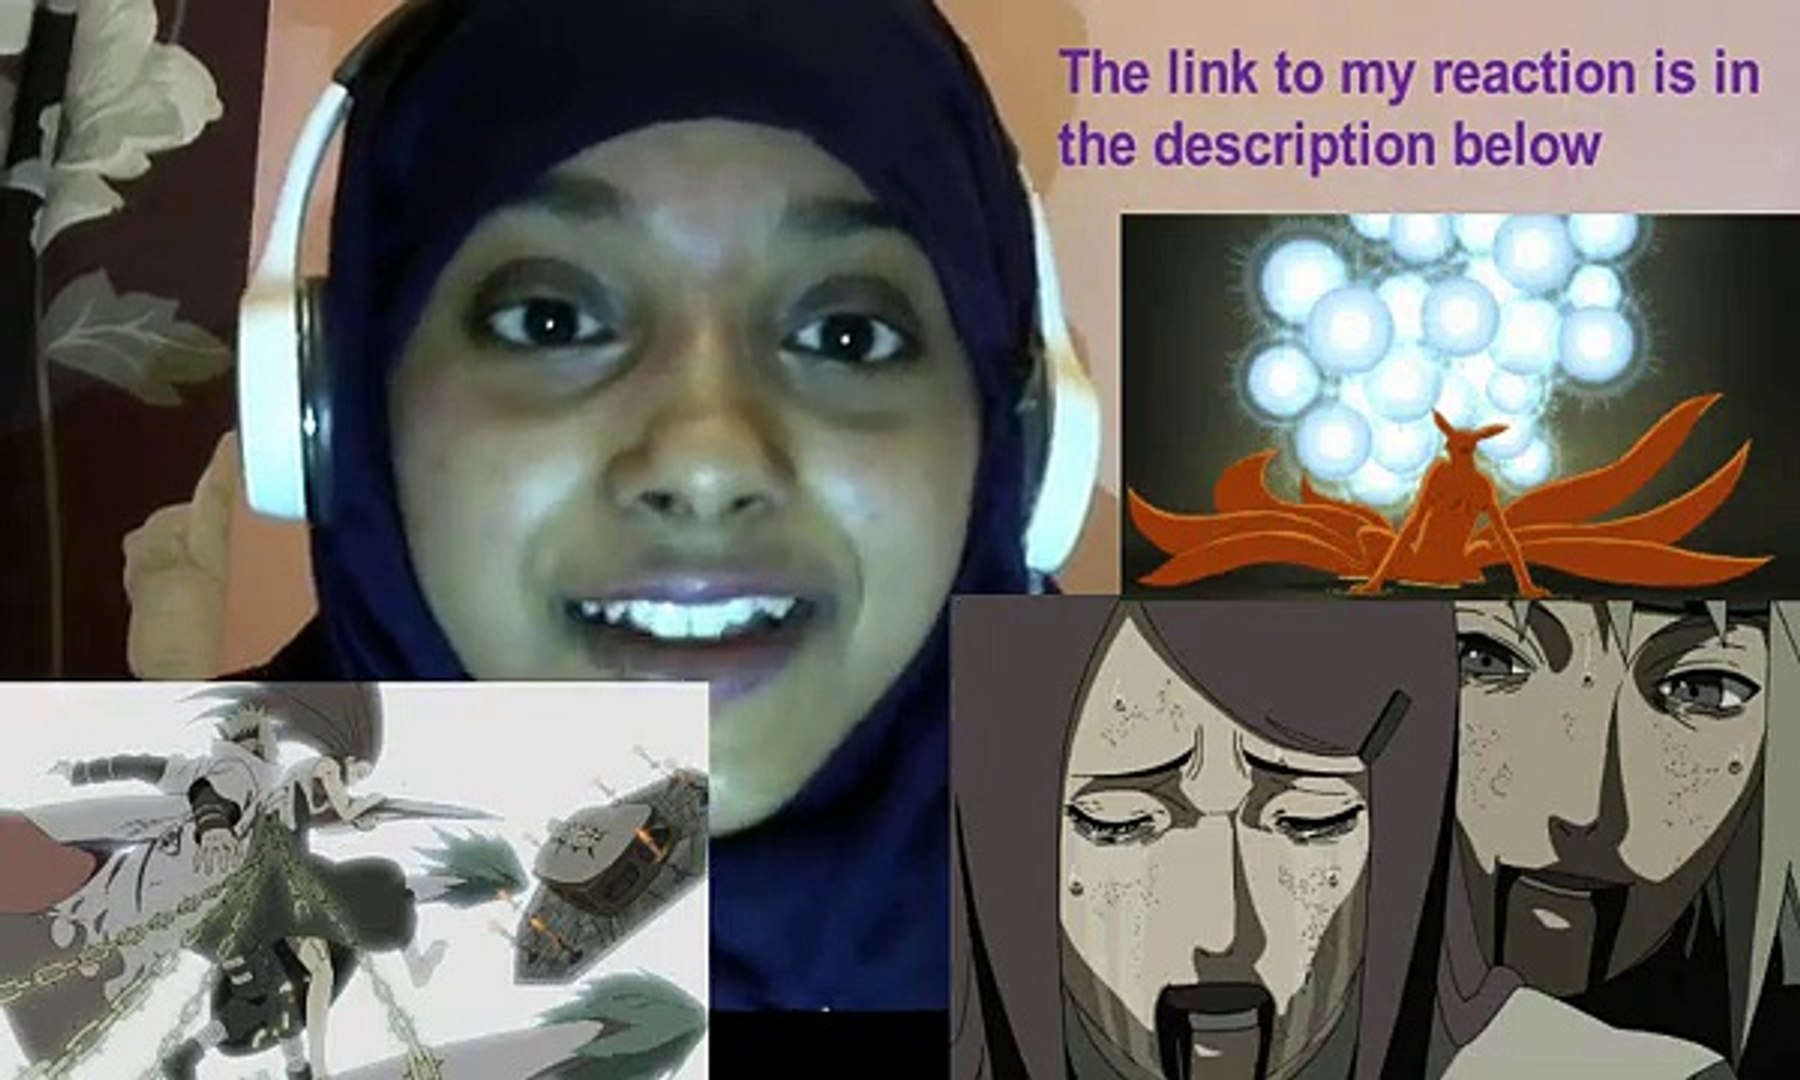 REDIRECT! Naruto Shippuden: Season 10 Episodes 247, 248 and 249 reaction